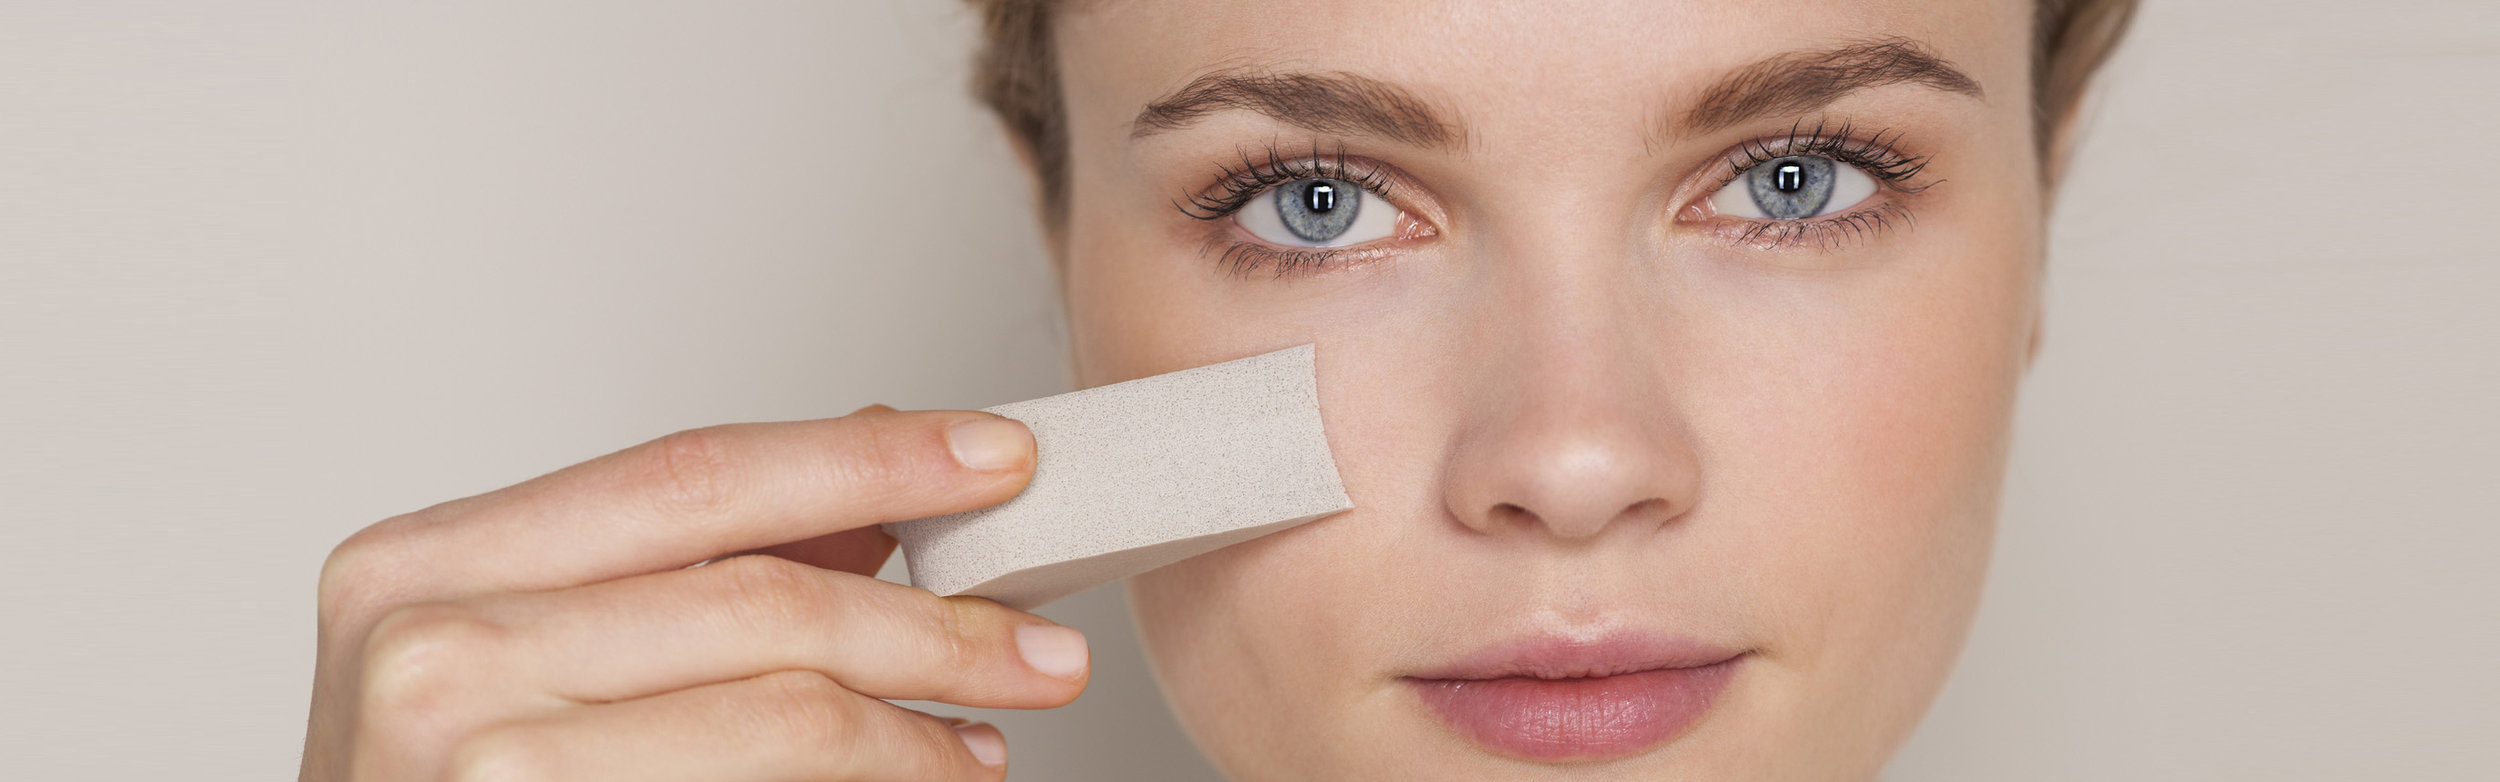 Best Makeup Primers For Your Skin Routine